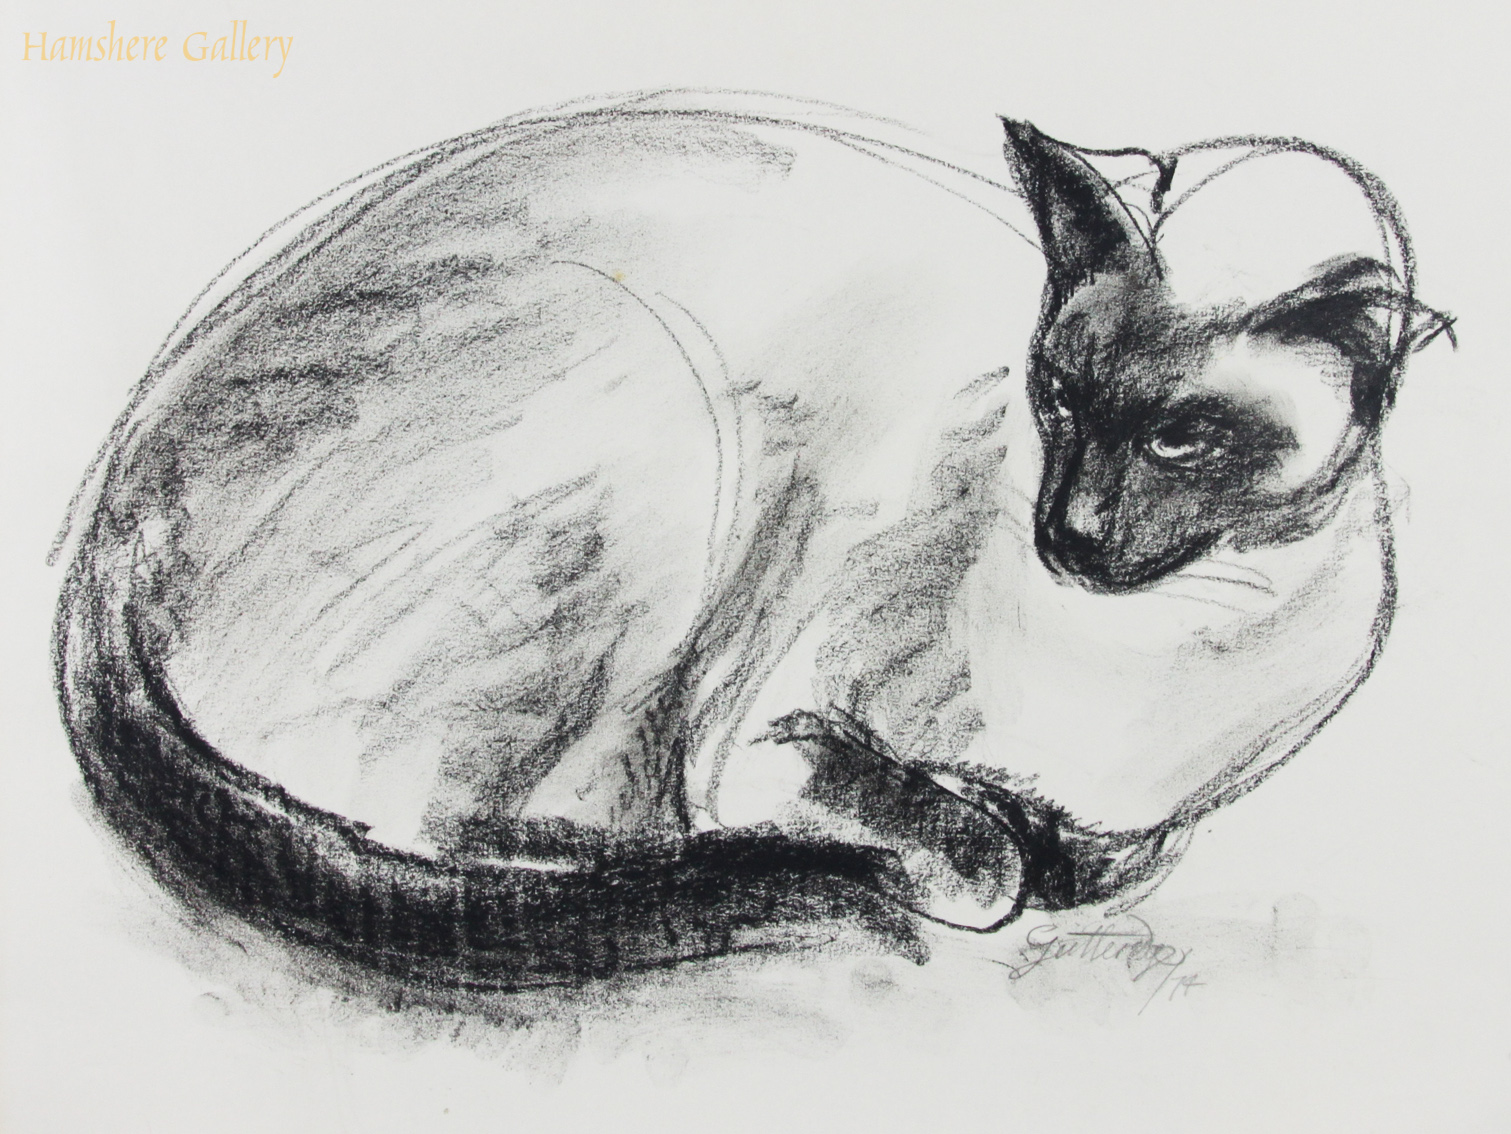 Click to see full size: Charcoal study of a recumbent Siamese cat by Thomas Gordon Lindsay Gutteridge (English, 1923-1907)- Charcoal study of a recumbent Siamese cat by Thomas Gordon Lindsay Gutteridge (English, 1923-1907)